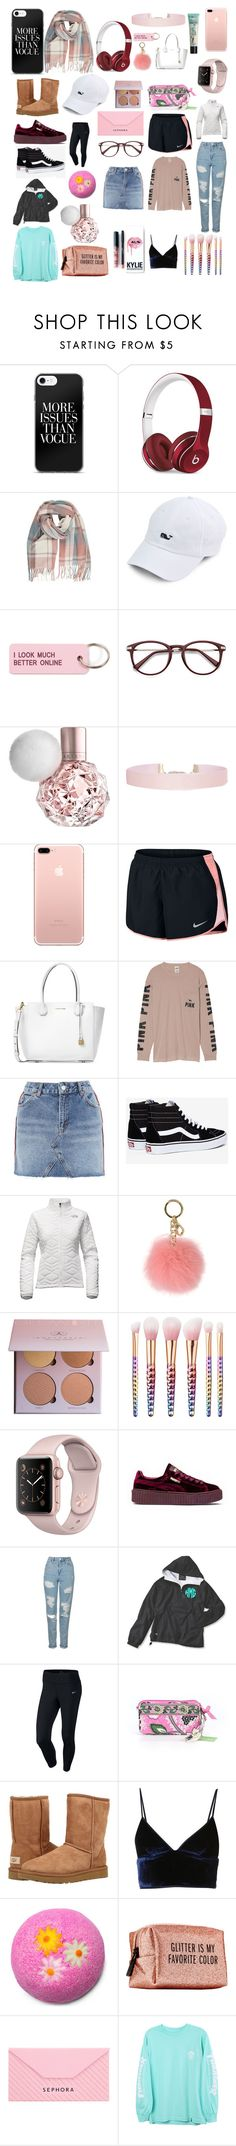 """""""Favs🎀💞"""" by ale-needam on Polyvore featuring Beats by Dr. Dre, Various Projects, Humble Chic, NIKE, Michael Kors, Victoria's Secret, Topshop, Vans, The North Face and MICHAEL Michael Kors"""